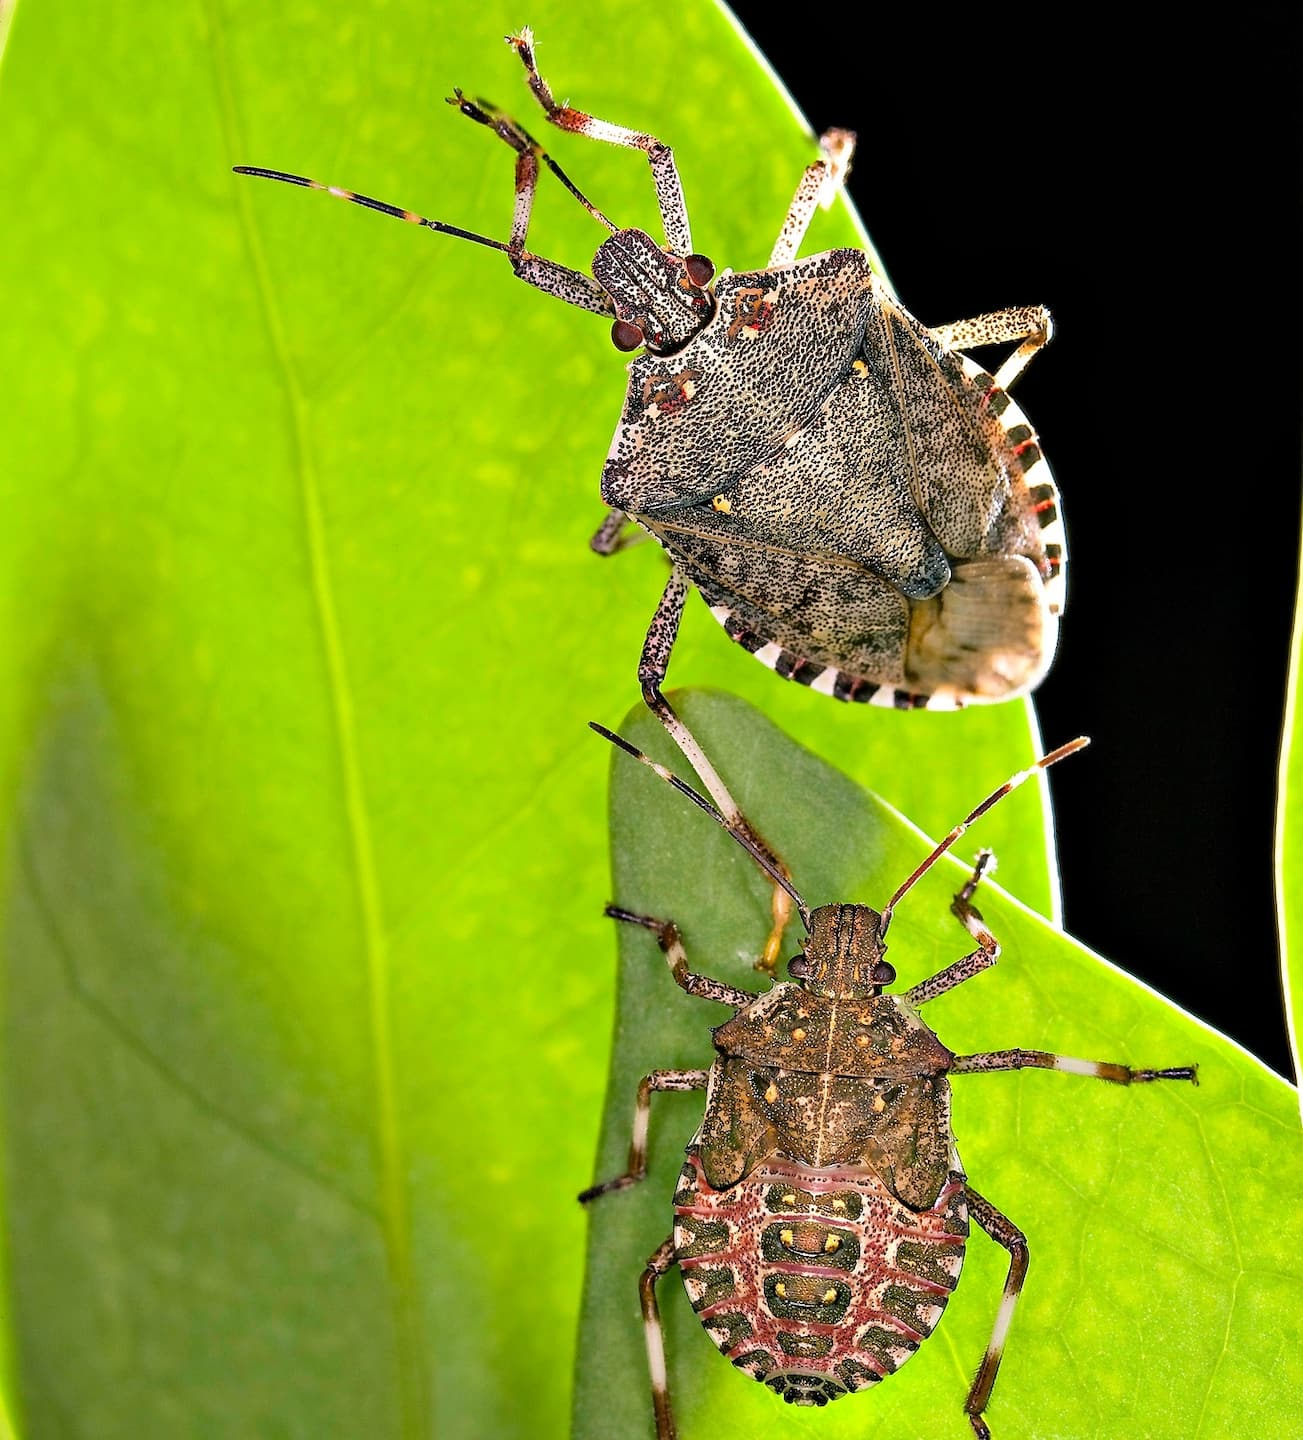 Stink bugs make their presence known this time of year in the Washington area. (Photo courtesy of the United States Department of Agriculture)